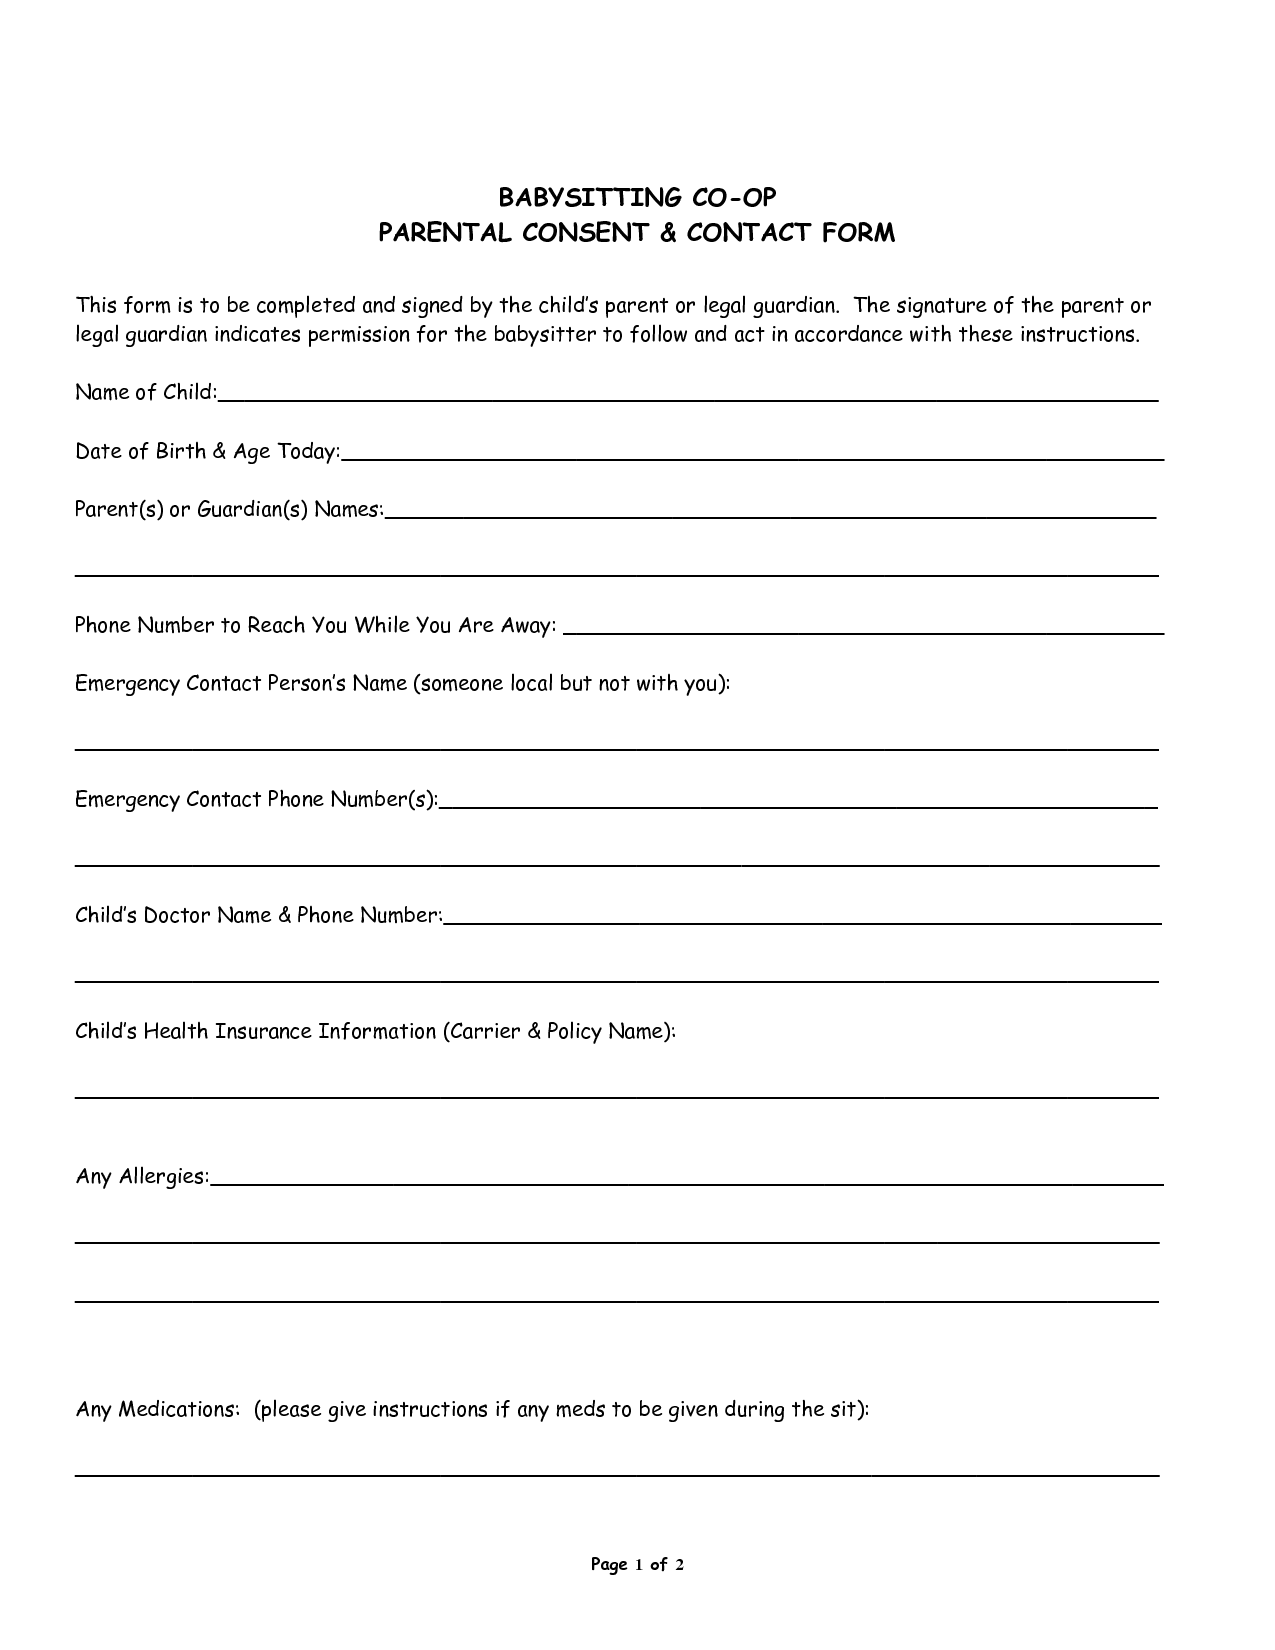 parental medical consent form template - 7 best images of red cross babysitting forms printable